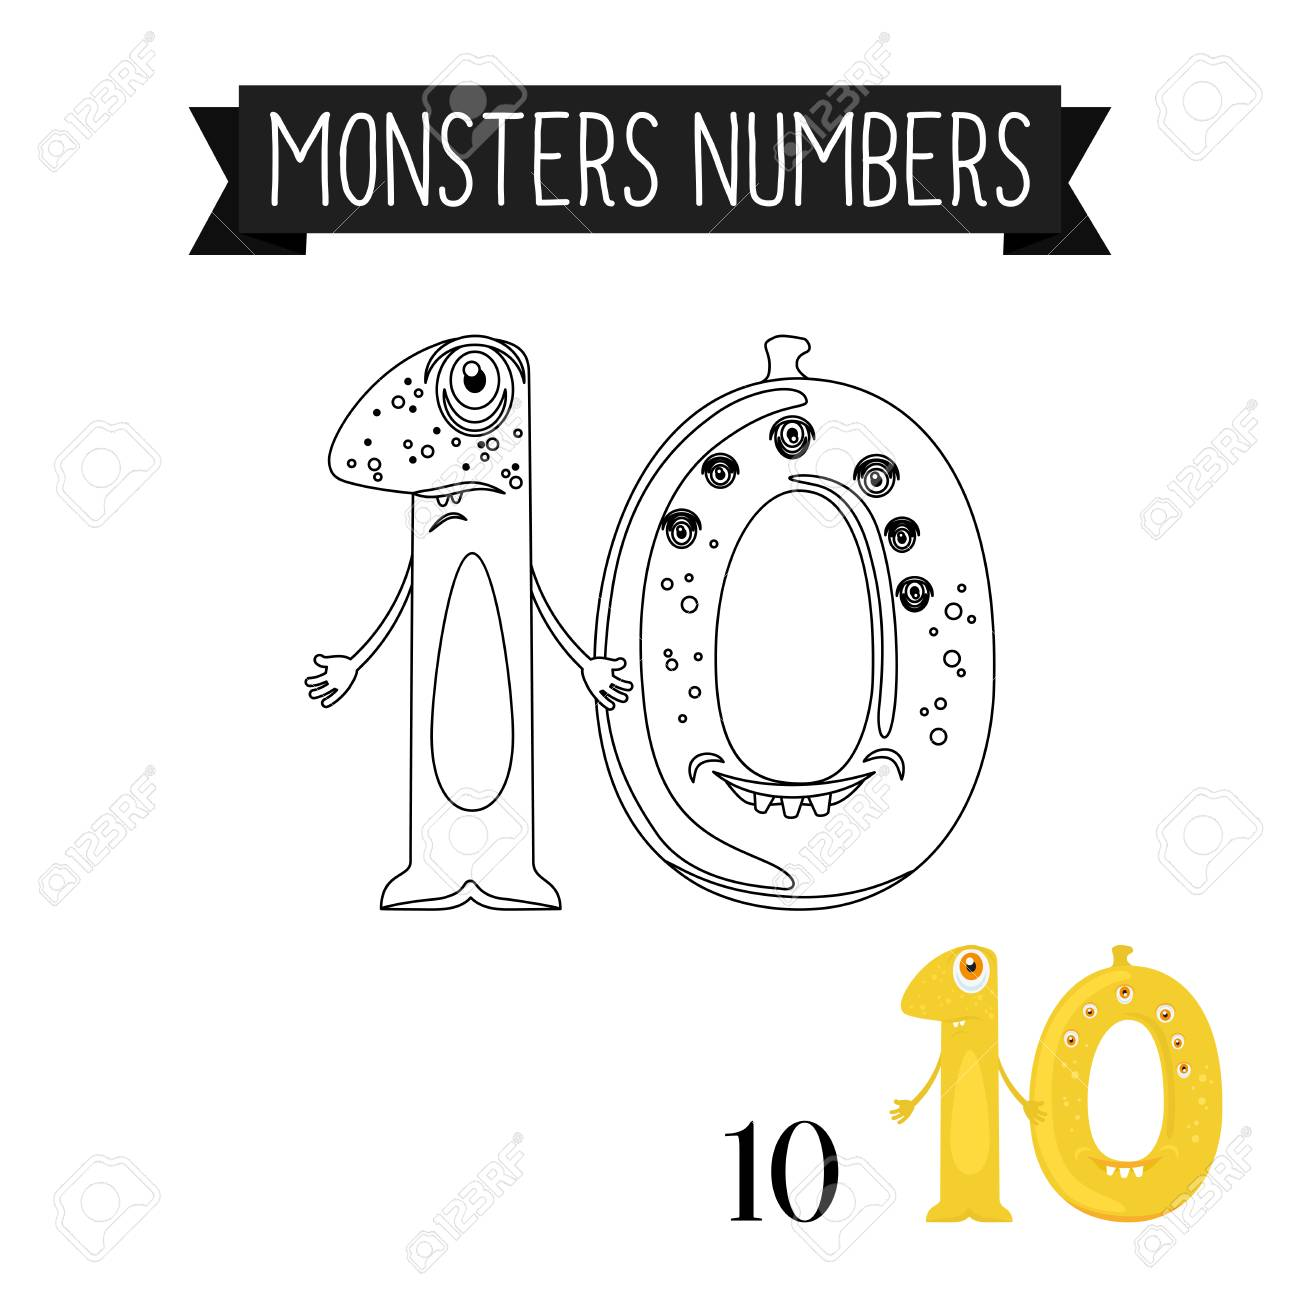 coloring page monsters numbers for kids number 10 vector illustration stock vector 67054534 - Number 10 Coloring Page